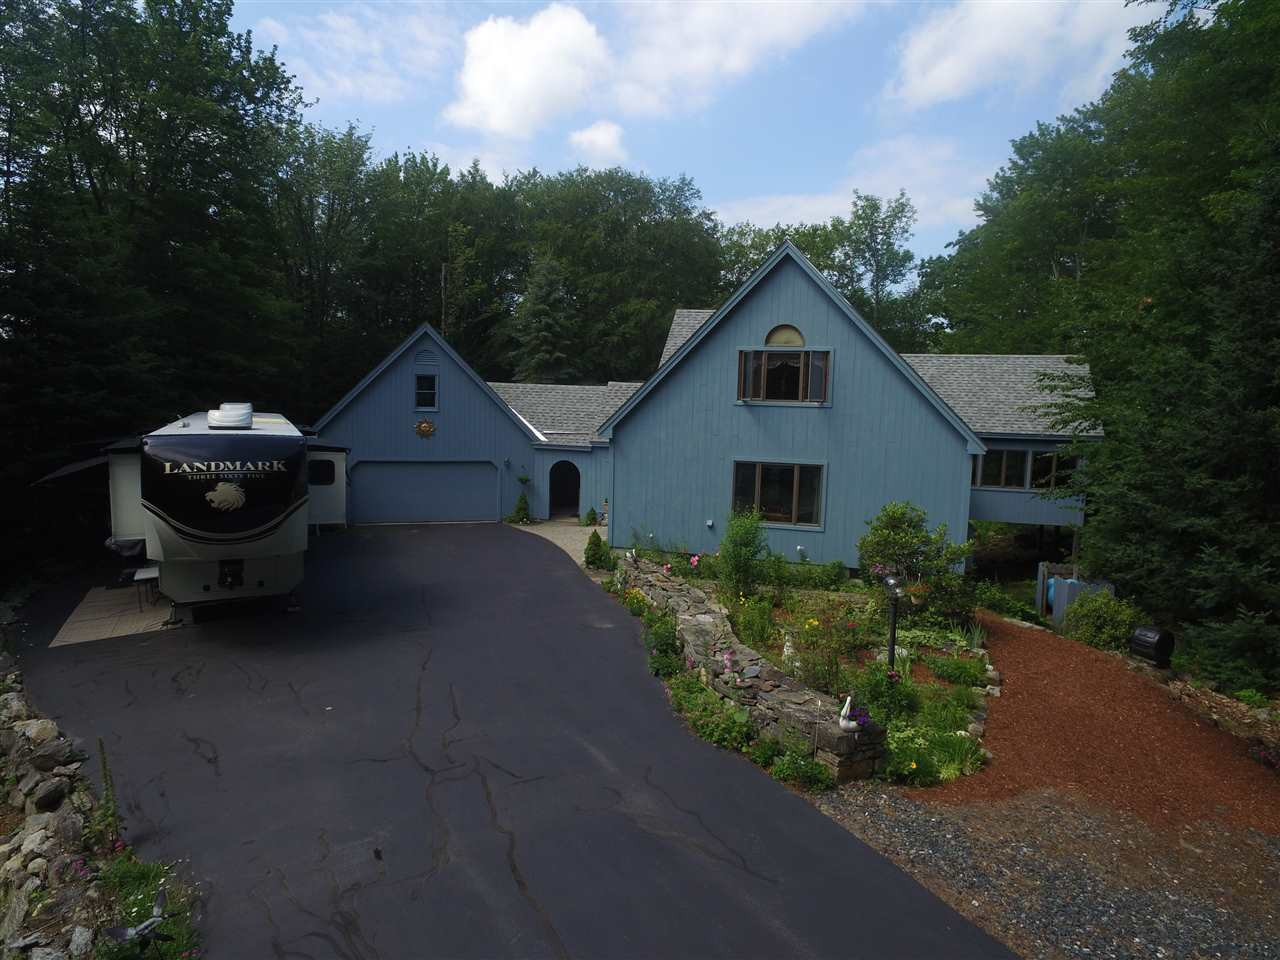 VILLAGE OF EASTMAN IN TOWN OF GRANTHAM NH Home for sale $$485,900 | $195 per sq.ft.